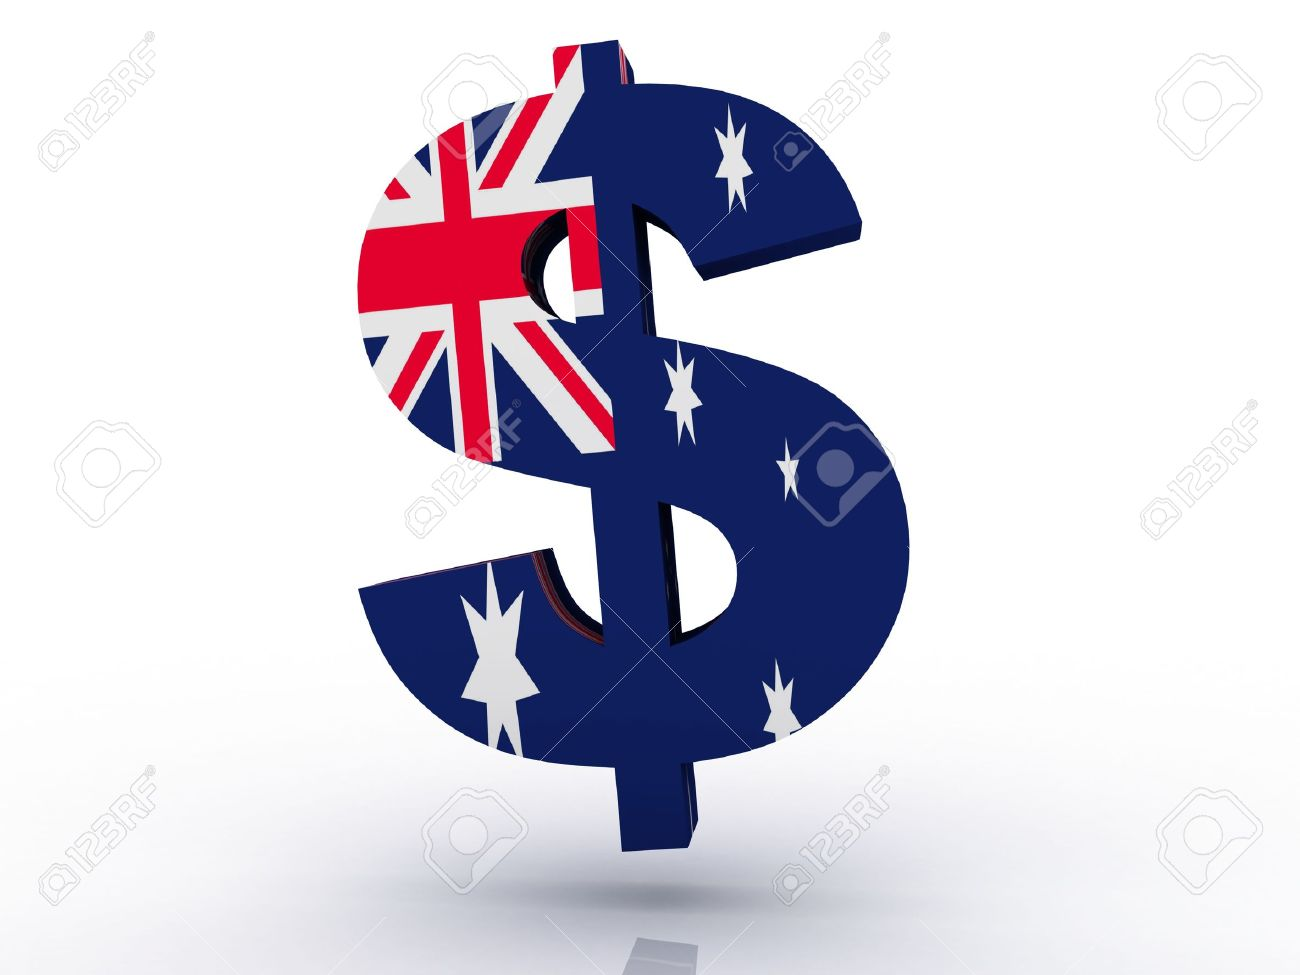 Australian Dollar Symbol Stock Photo Picture And Royalty Free Image